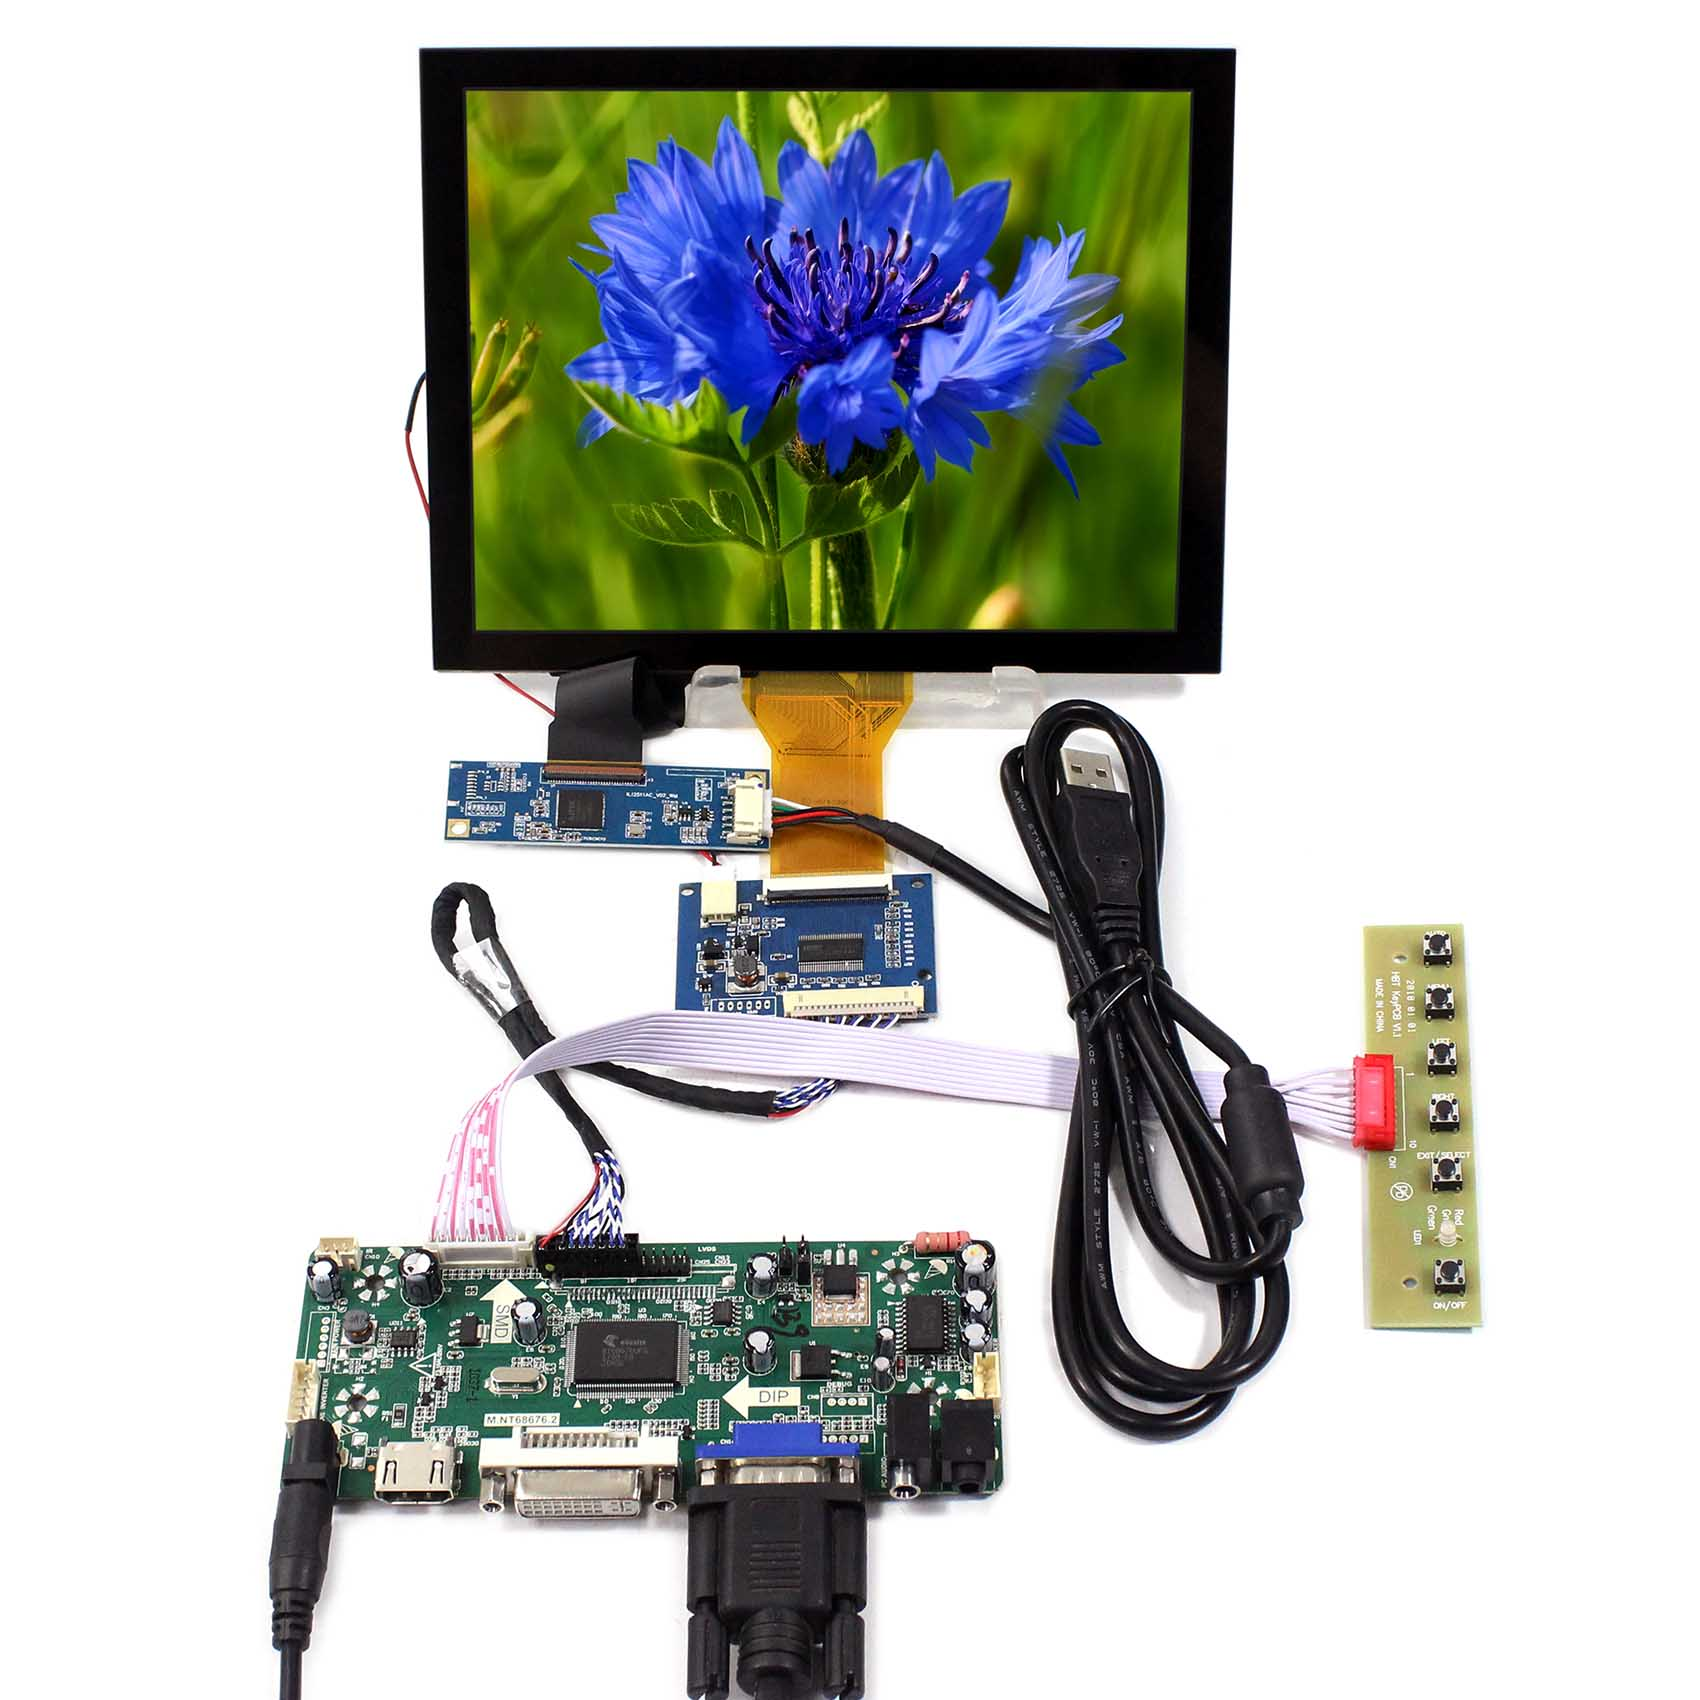 8inch EJ080NA-05A 800x600 LCD Screen Capacitive Touch Panel Backlight WLED M.NT68676 HDMI DVI VGA AUDIO LCD Controller Board hdmi vga av audio usb lcd controller board 8inch 800x600 ej080na 05a lcd screen